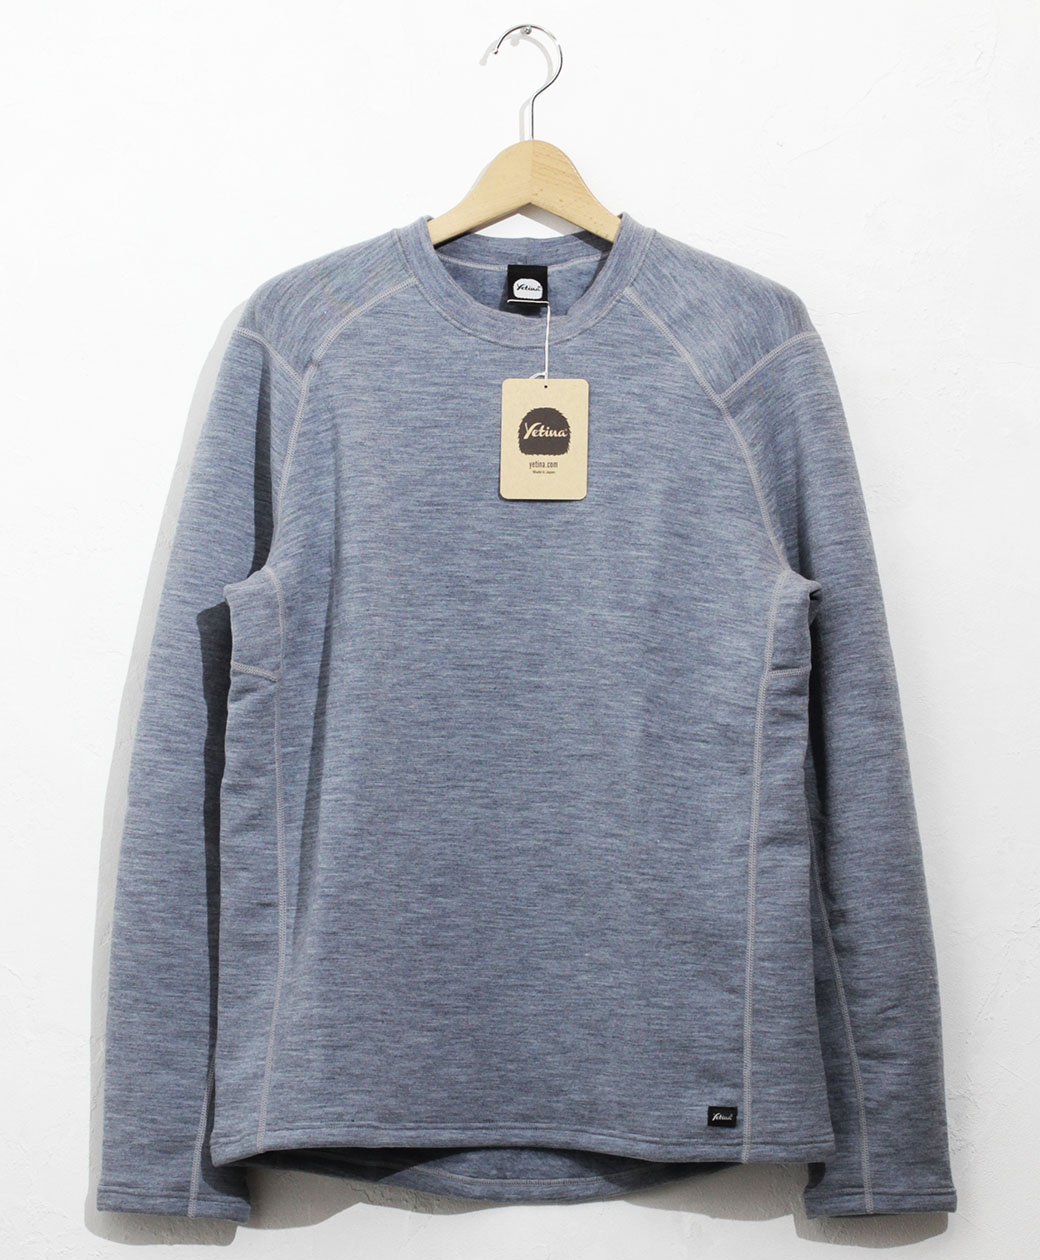 yetina light crew neck(heather blue)